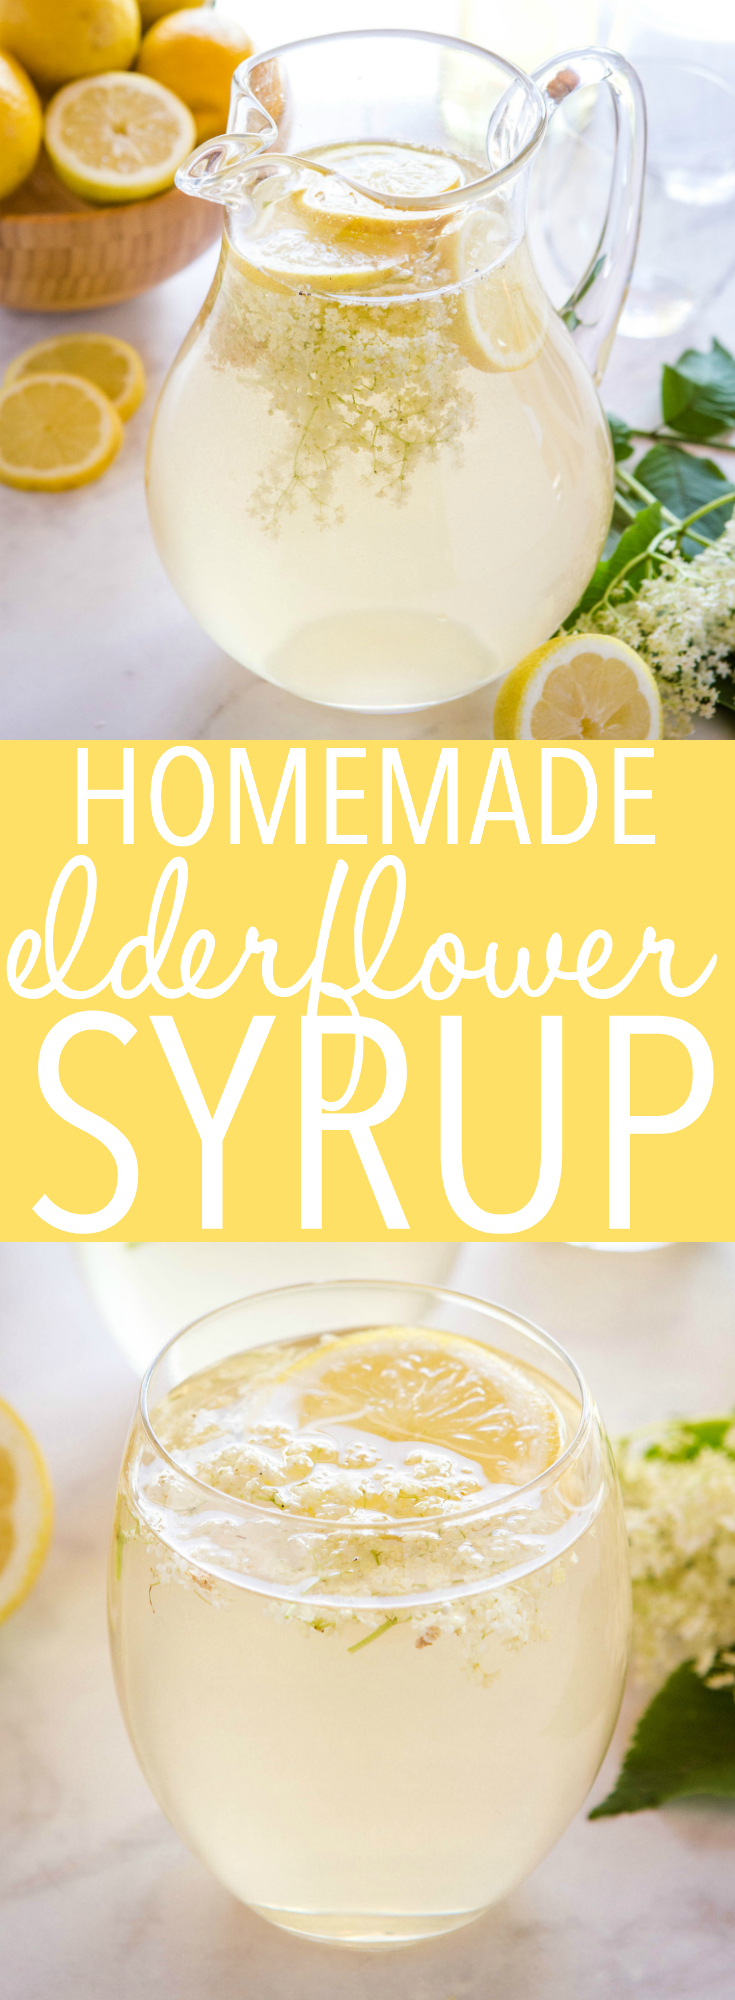 This elderflower syrup recipe makes a sweet floral base for creating delicious drinks and desserts. Make this recipe for a taste of summer! Recipe from thebusybaker.ca! #elderflower #syrup #homemadesyrup #drinks #summer #sucdesoc #holunderblutensirop #holunderblutensaft #siropdesoc #european via @busybakerblog